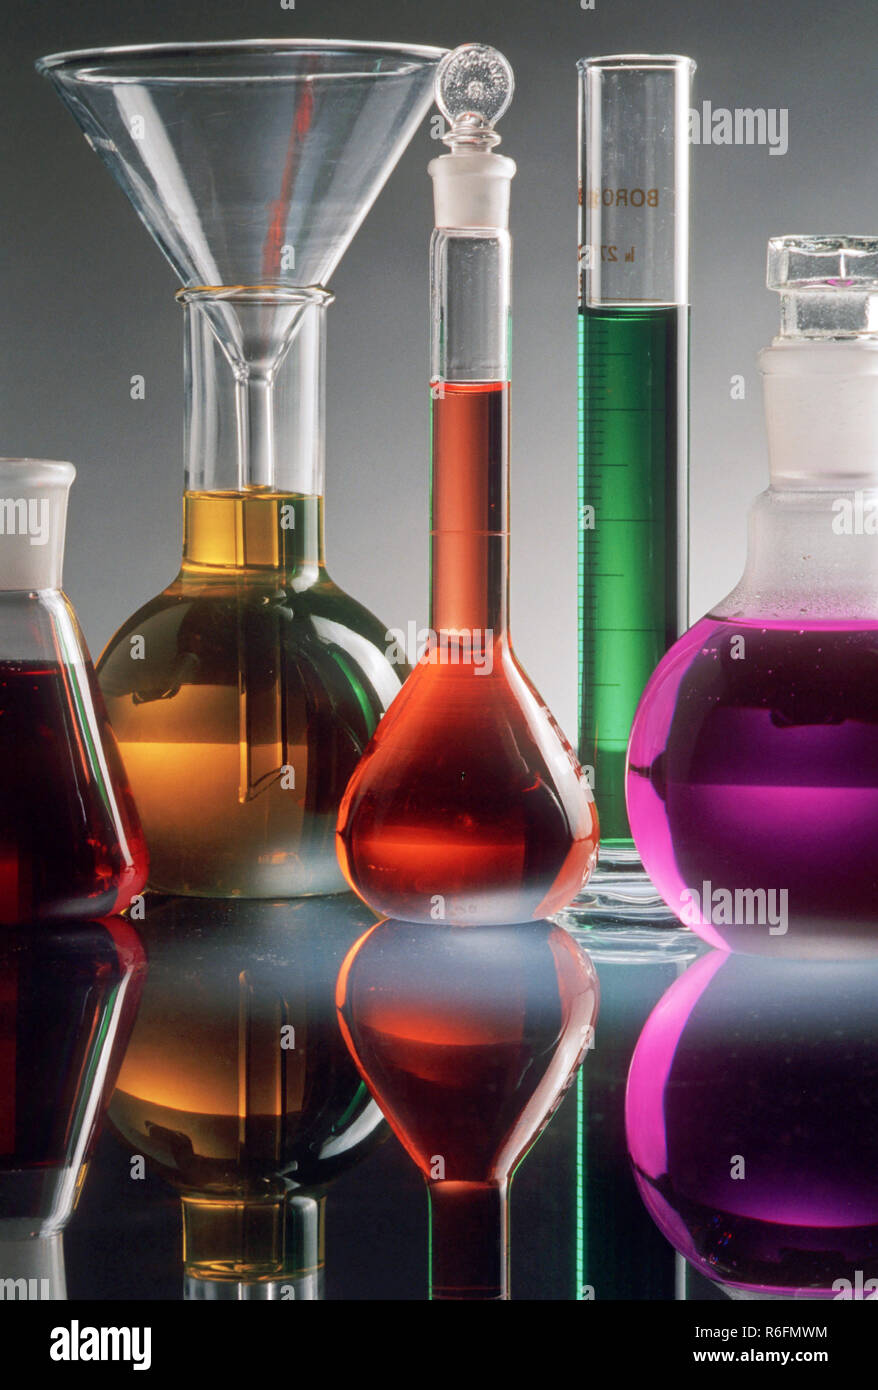 Bécher divers et colorés en laboratoire chimique, concept Photo Stock